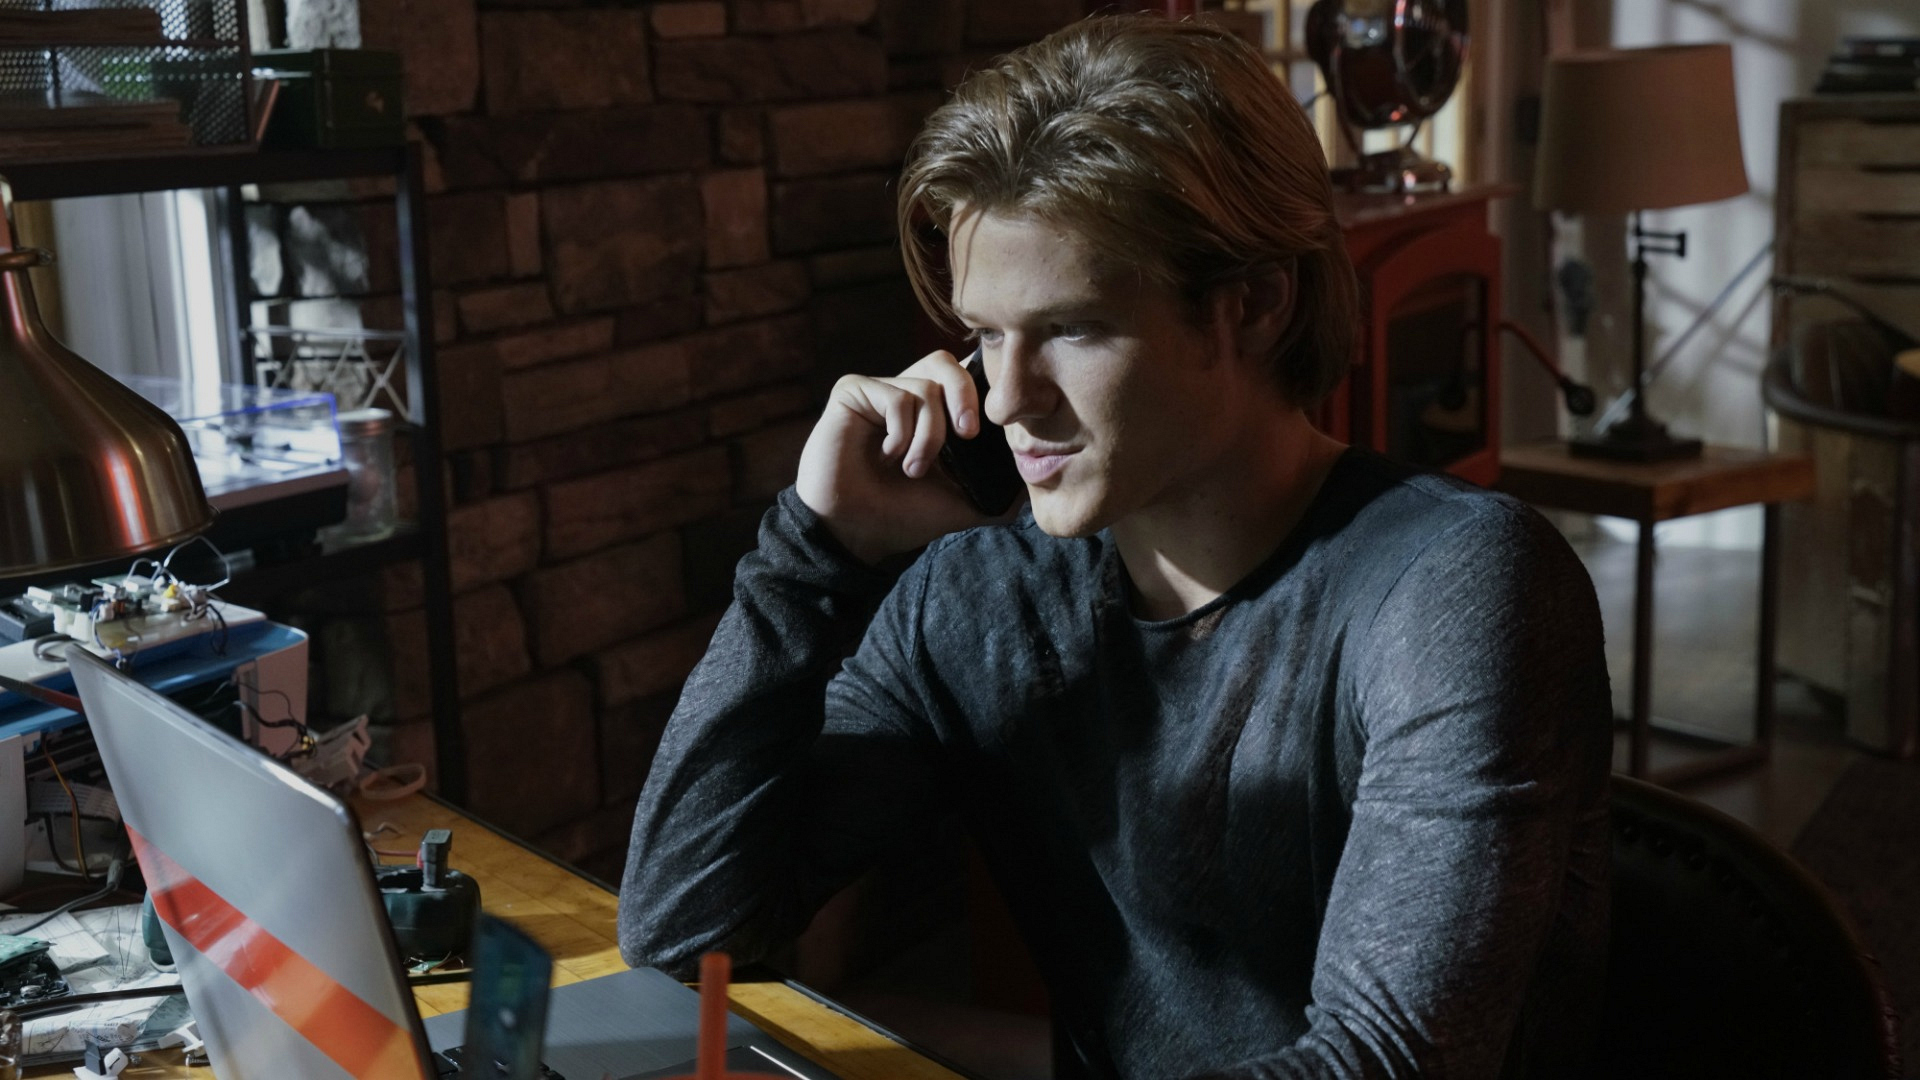 MacGyver looks into something troubling online.